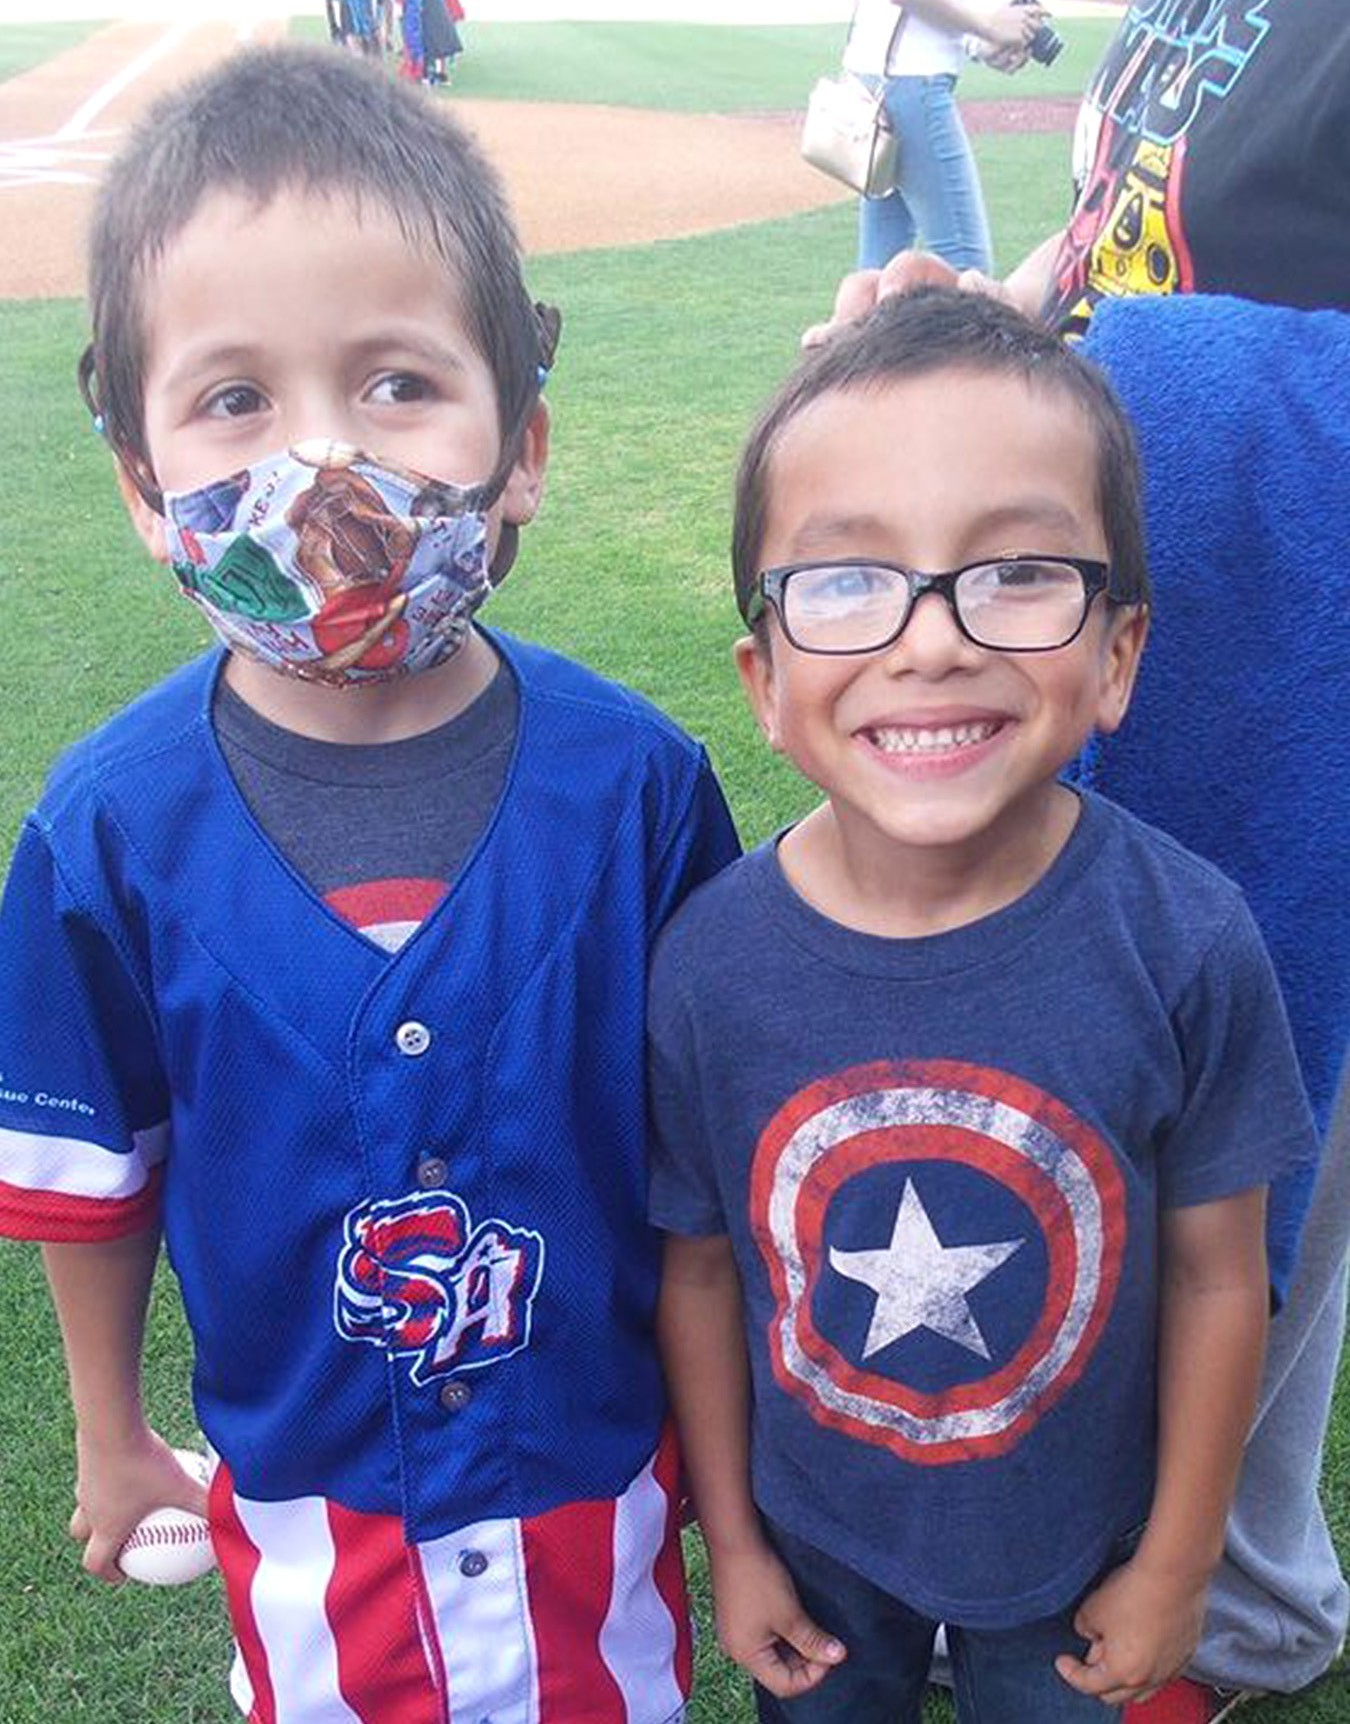 Twin brothers Darian and Jayden Chapa smile proudly after Darian received a team jersey at the San Antonio Missions game on Saturday, May 14.